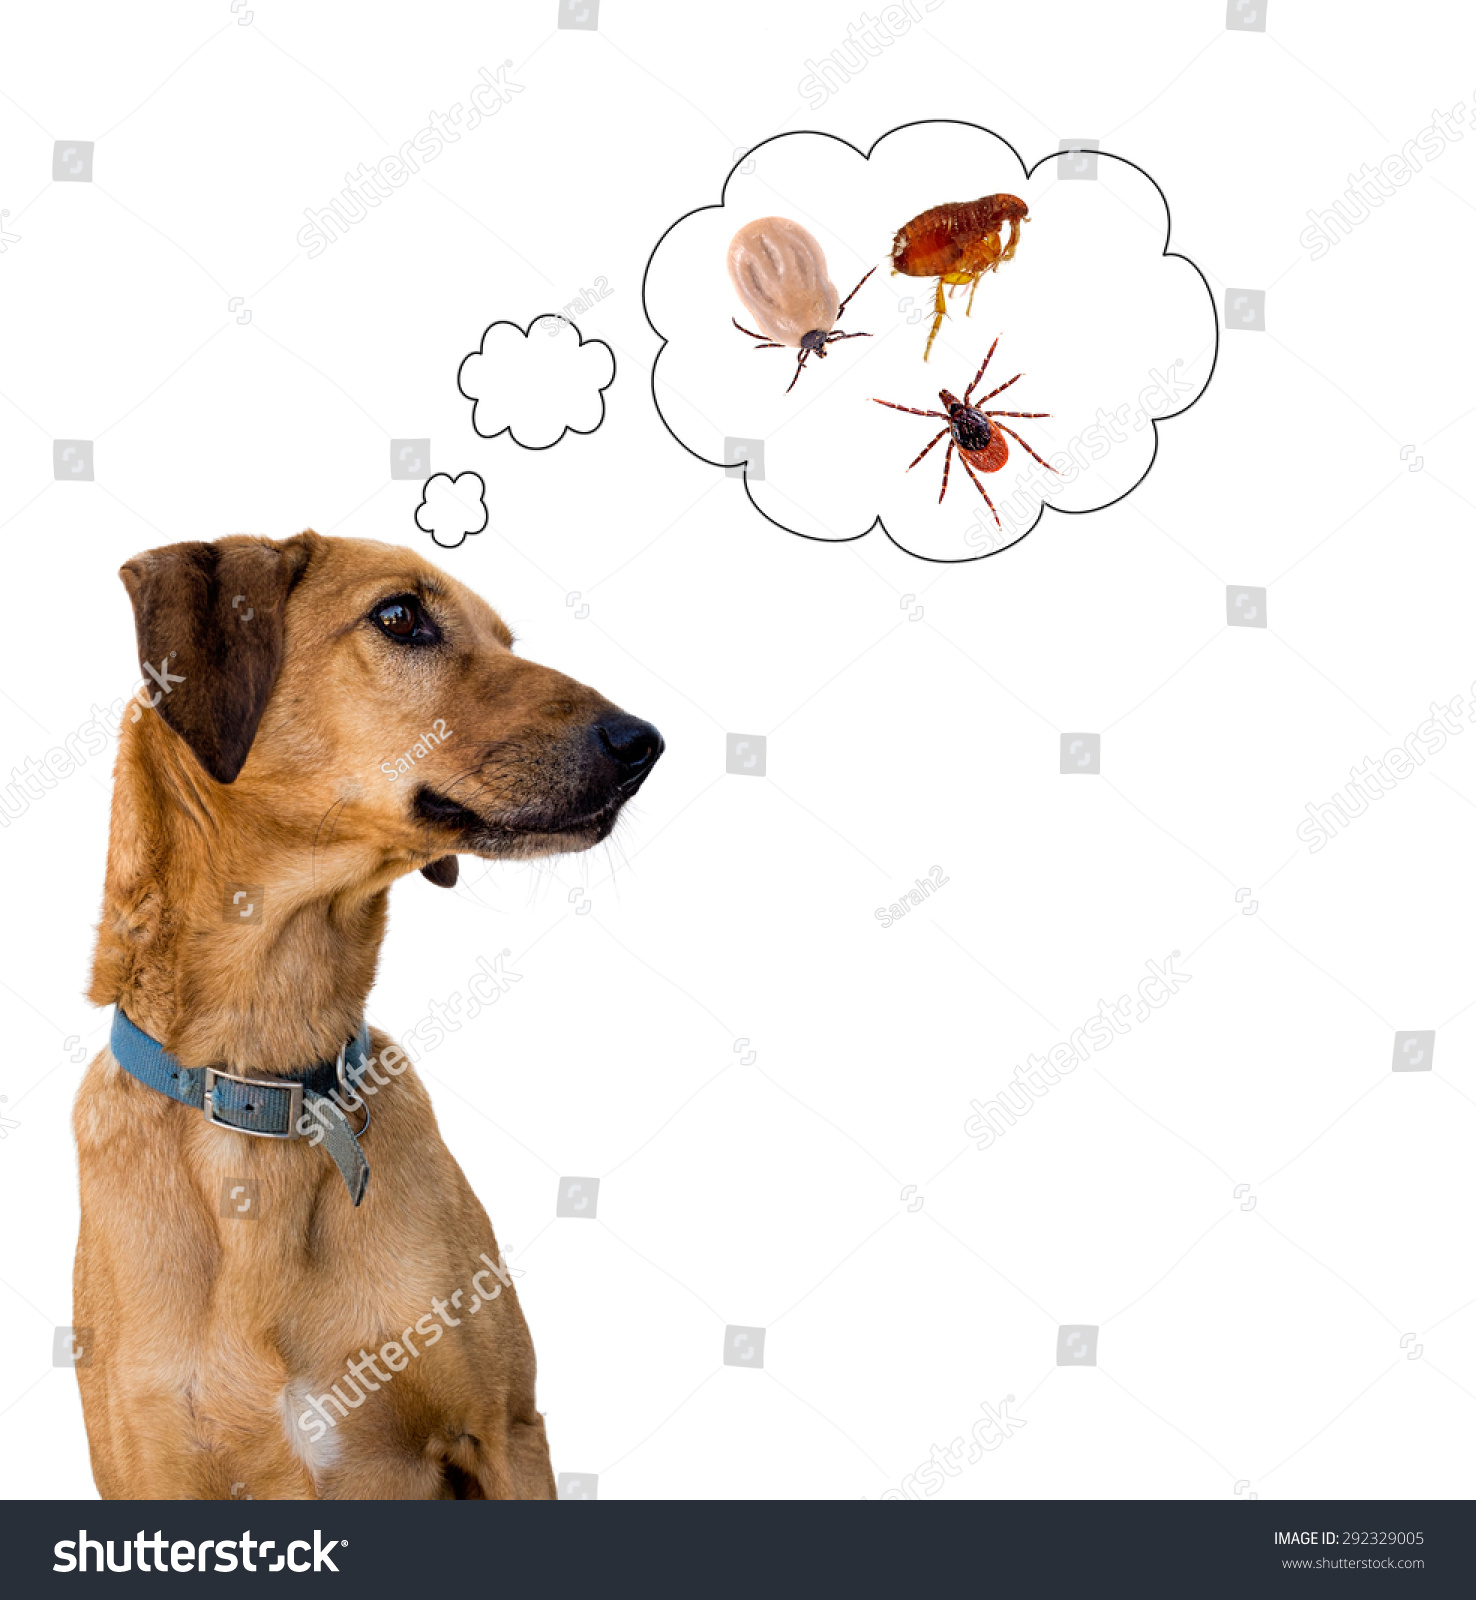 Dog On White Considering Problem Tick Stock Photo 292329005 ...